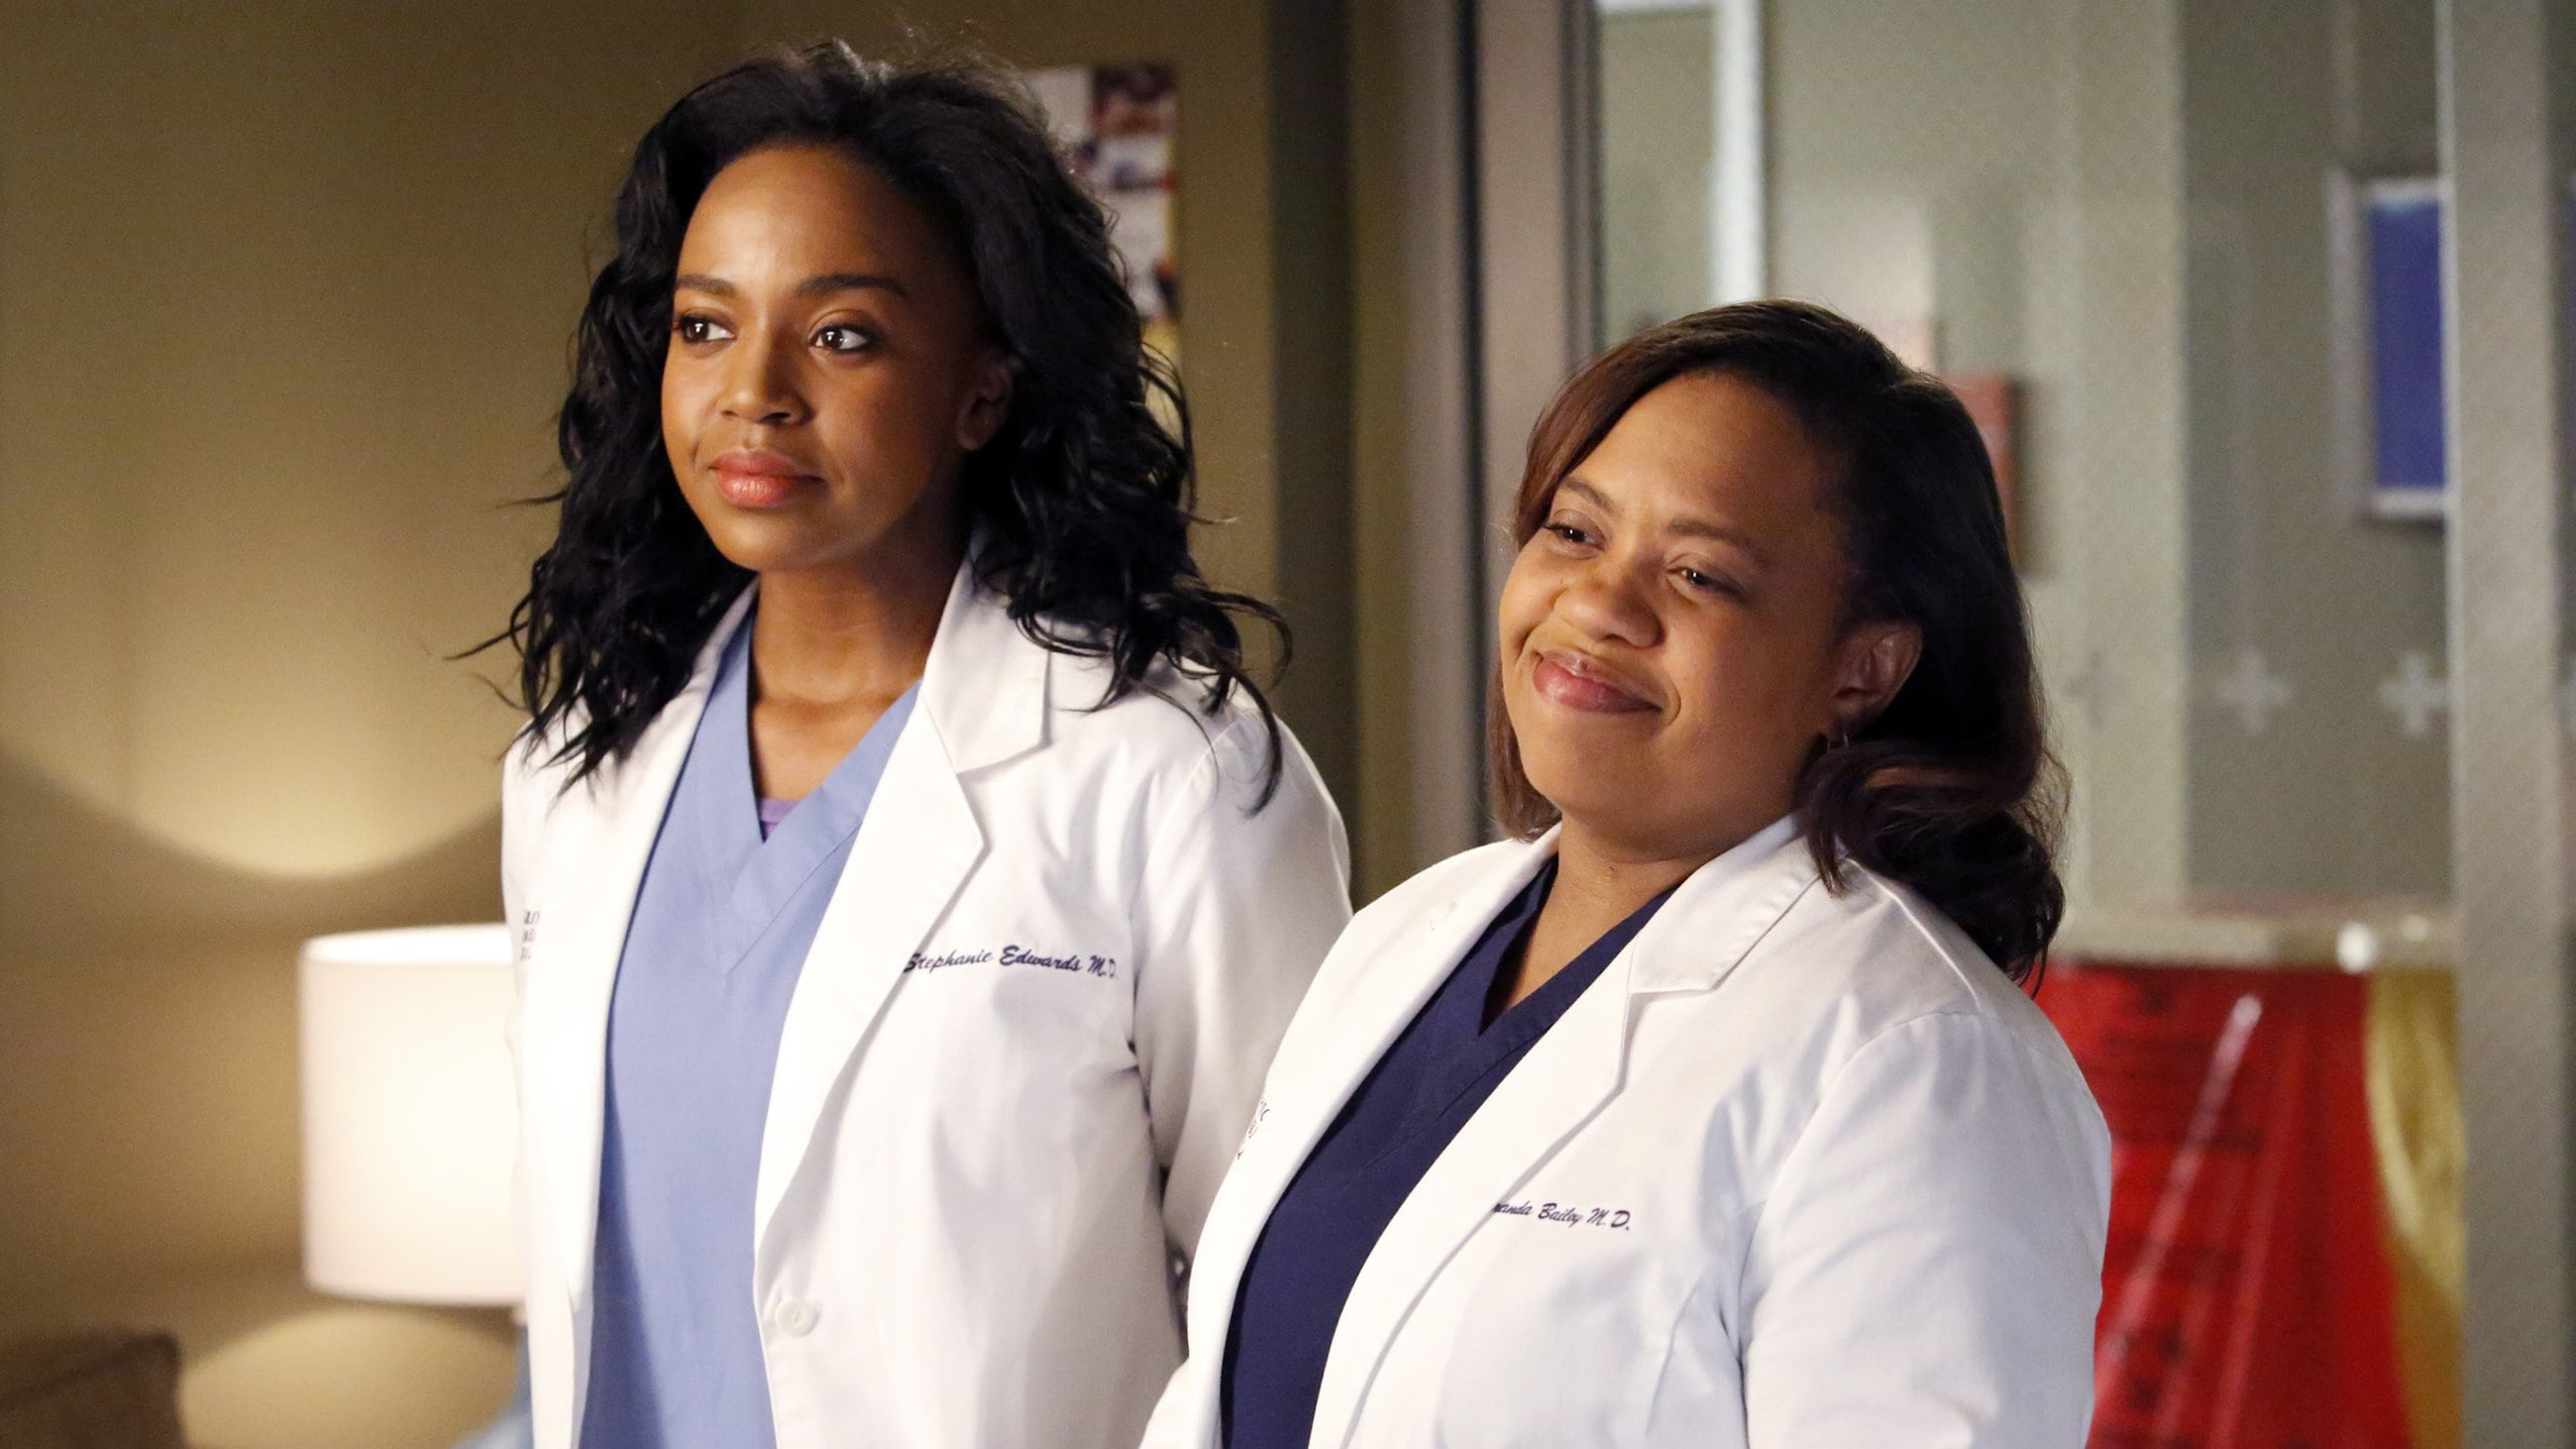 Grey's Anatomy - Season 10 Episode 23 : Everything I Try to Do, Nothing Seems to Turn Out Right